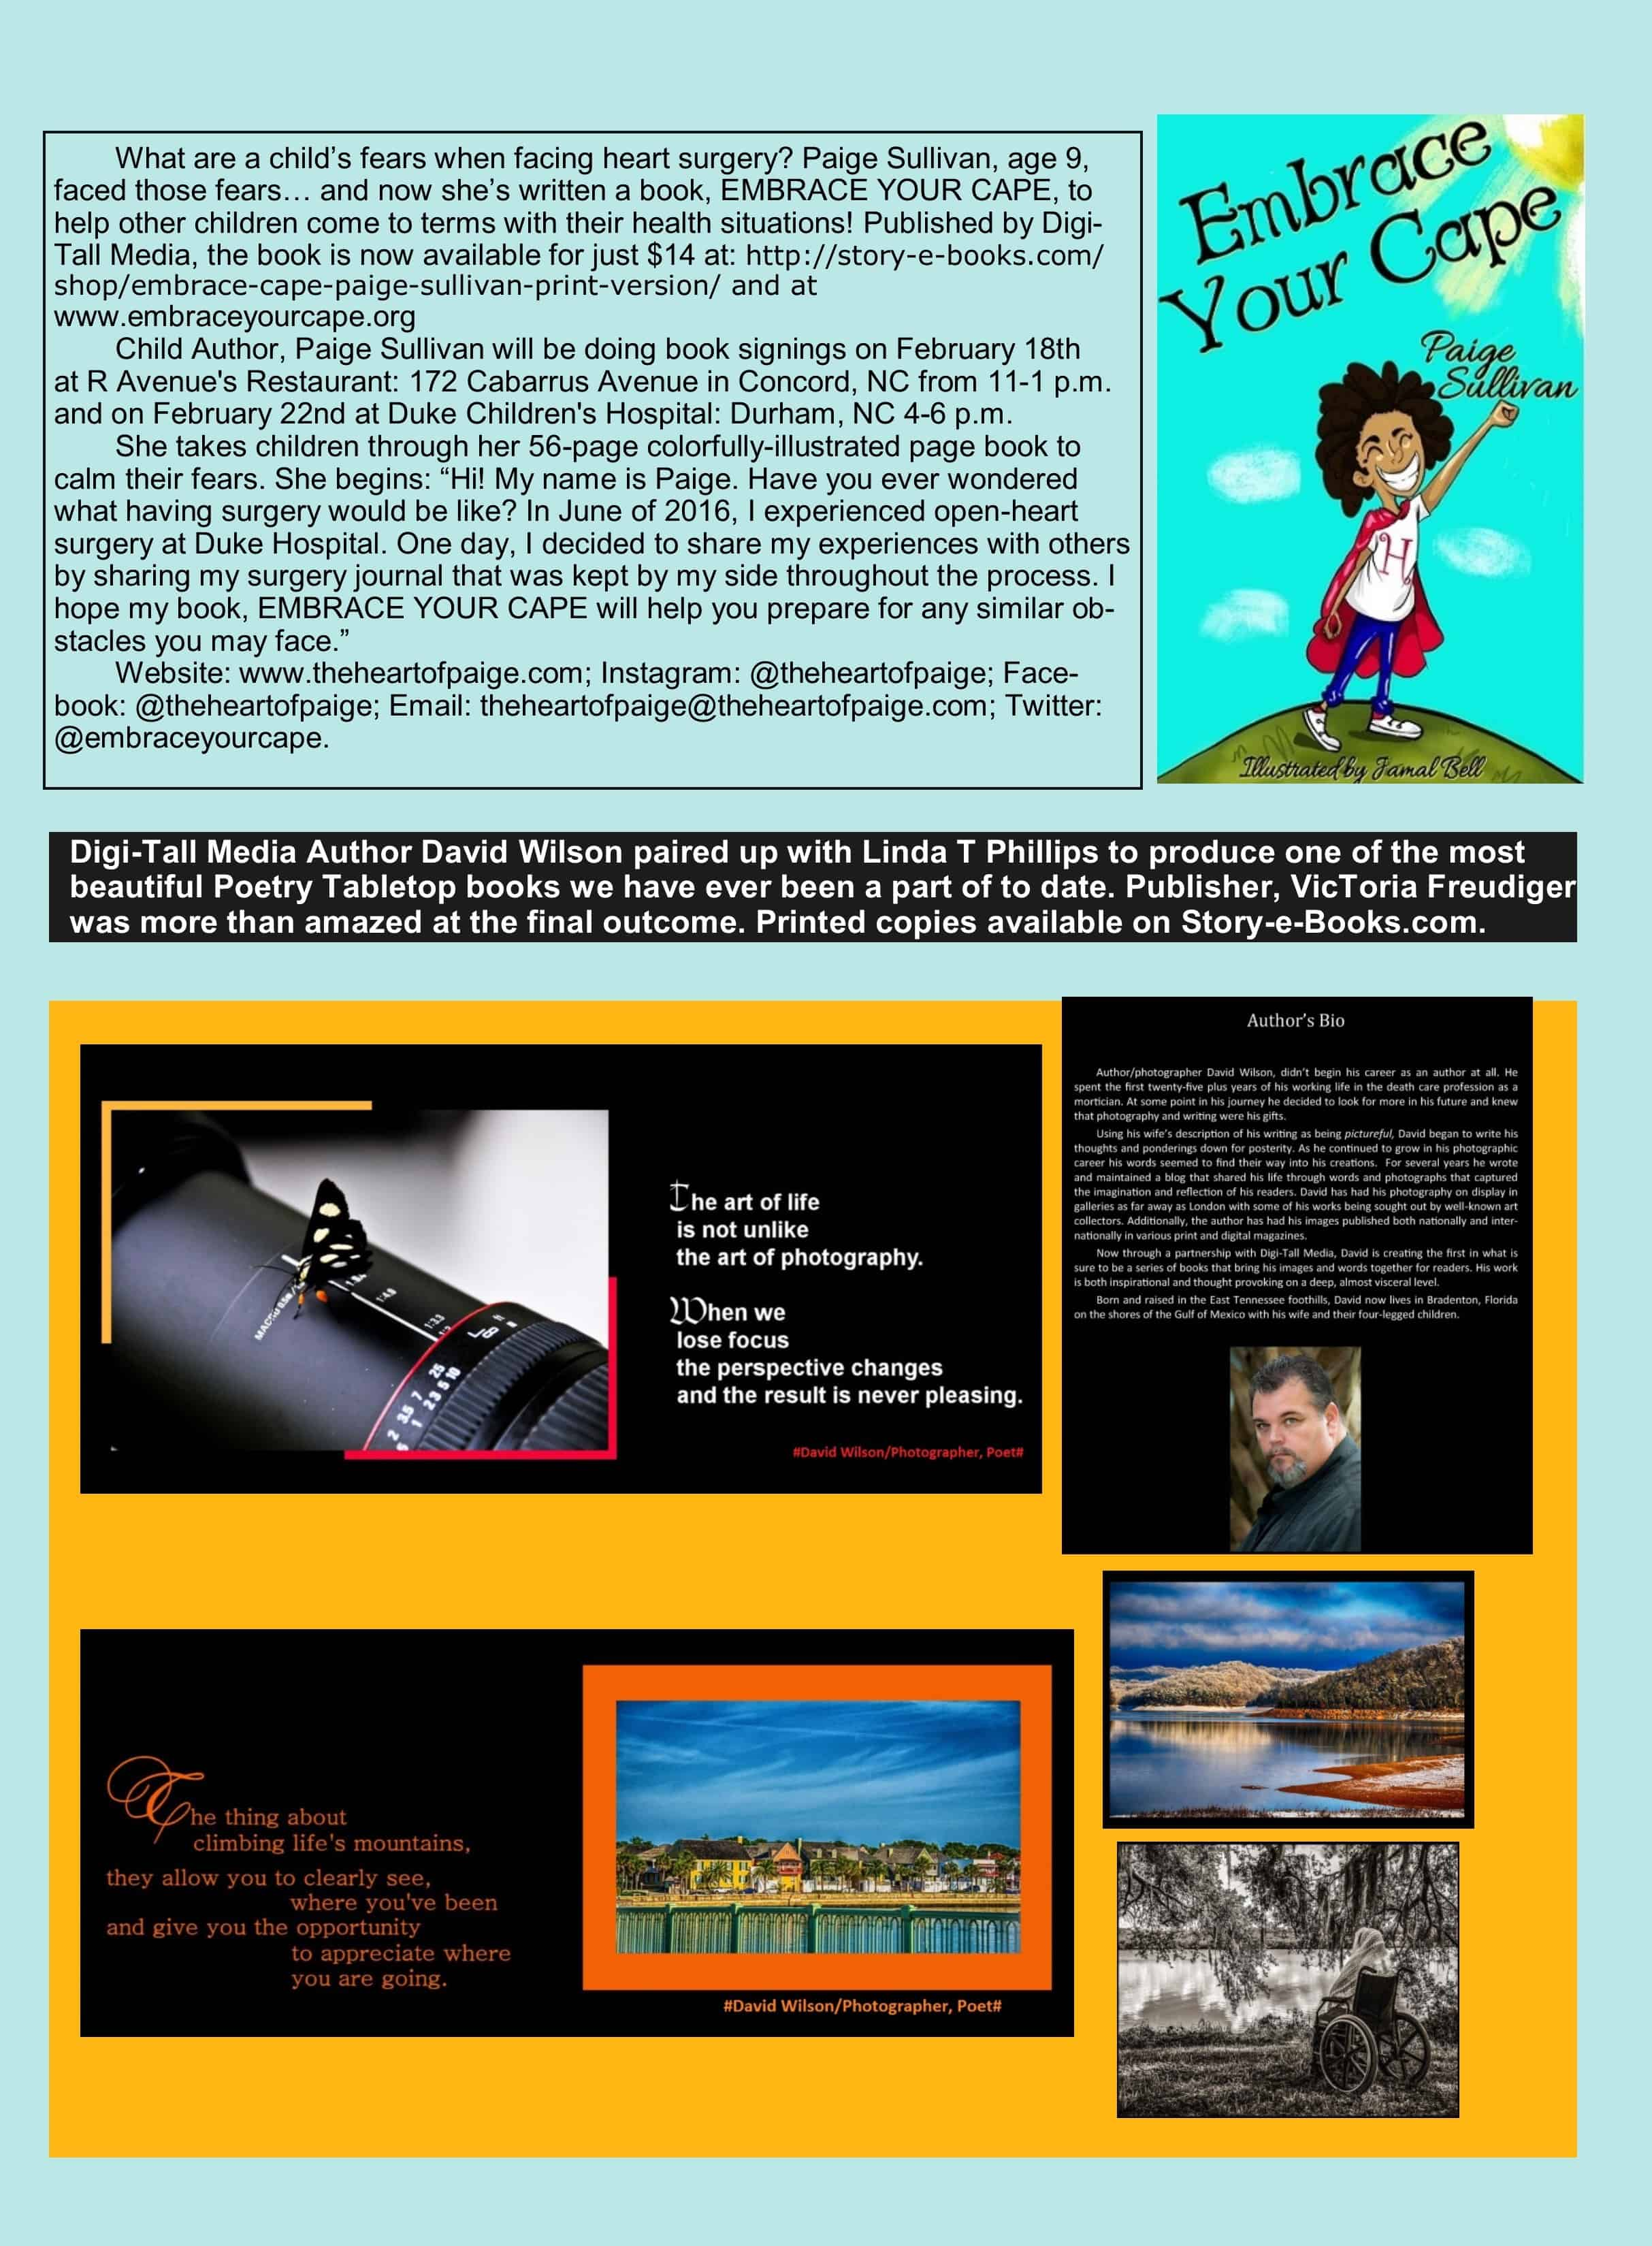 Digi-Tall Media 1st Qtr 2017 Newsletter pg. 3